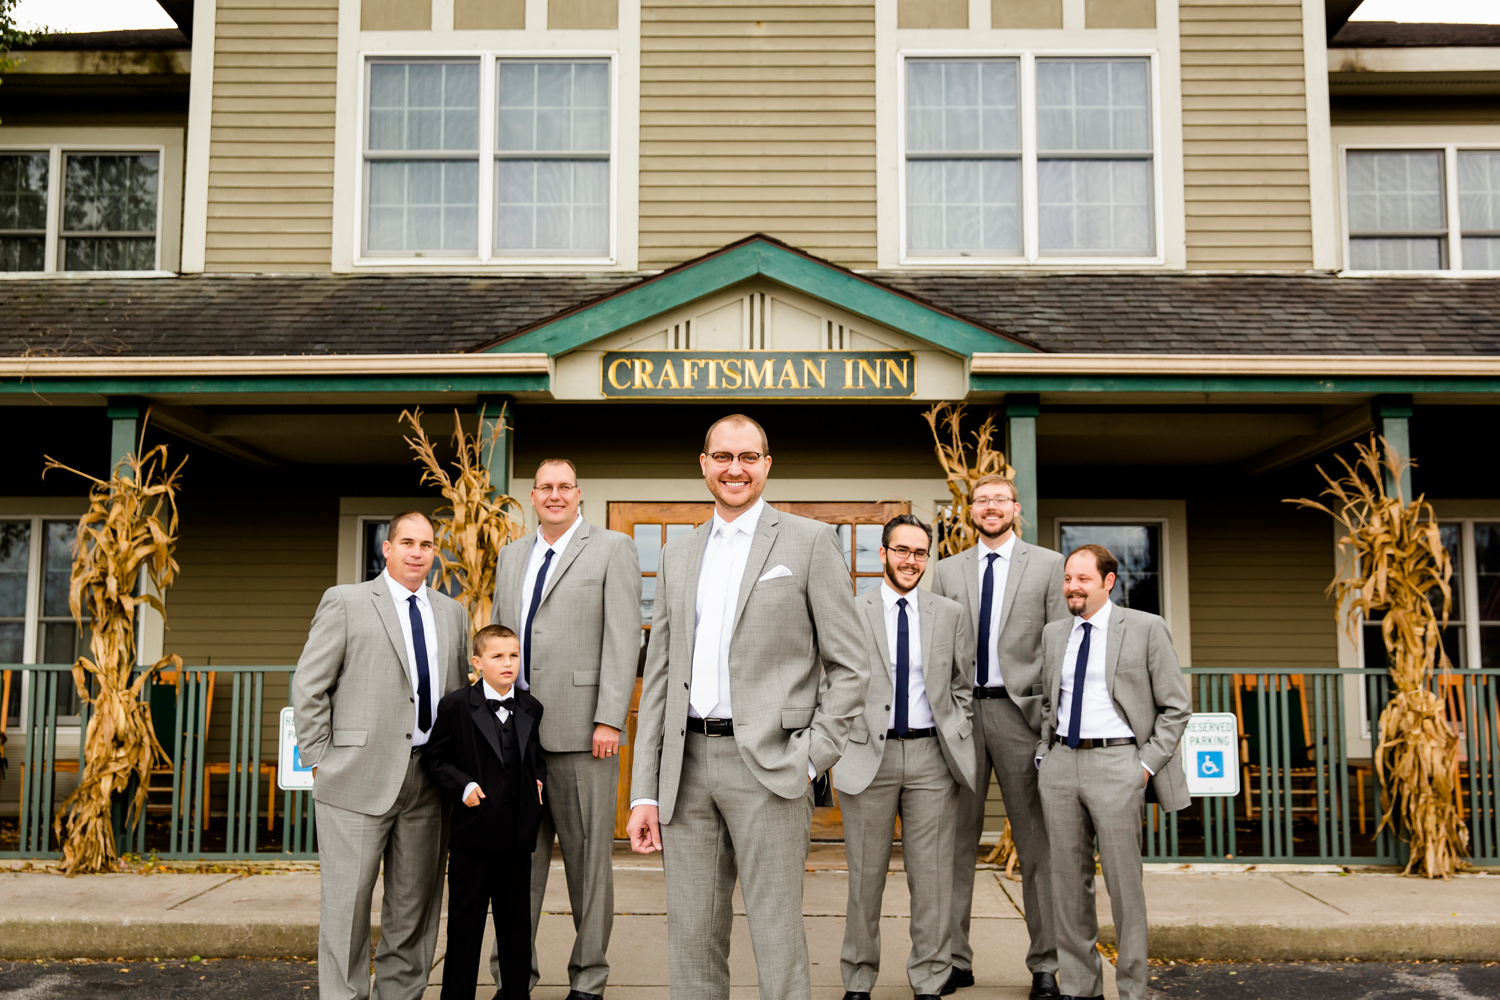 Craftsman inn wedding